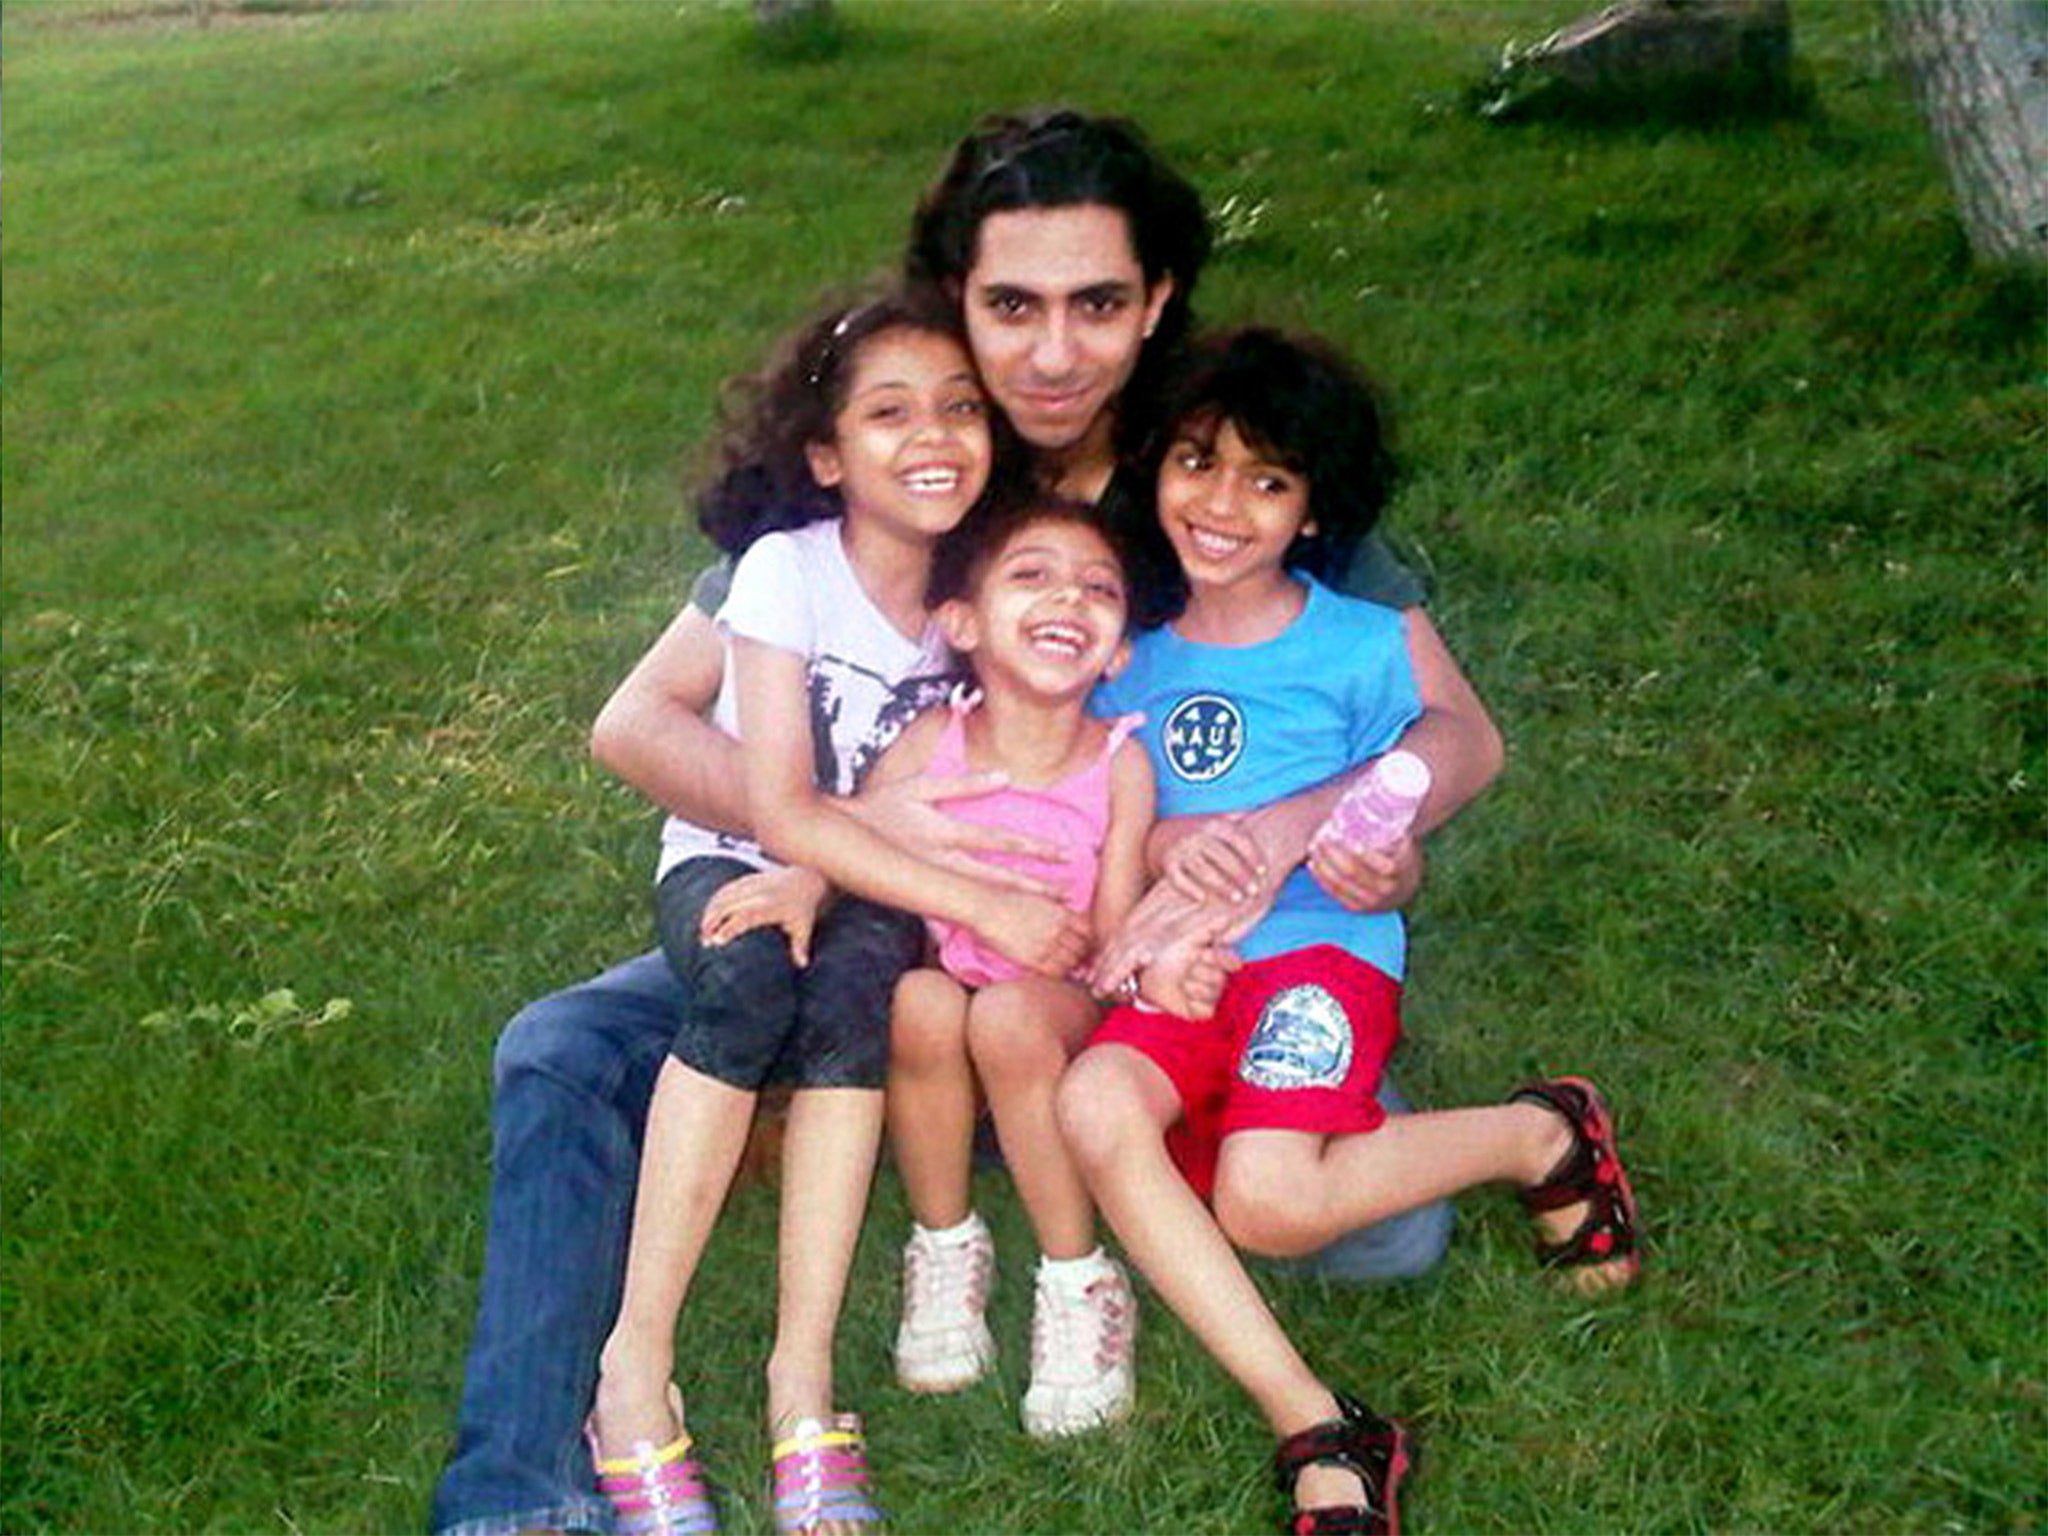 Raif Badawi: Atheist Saudi blogger faces further round of lashes, supporters say